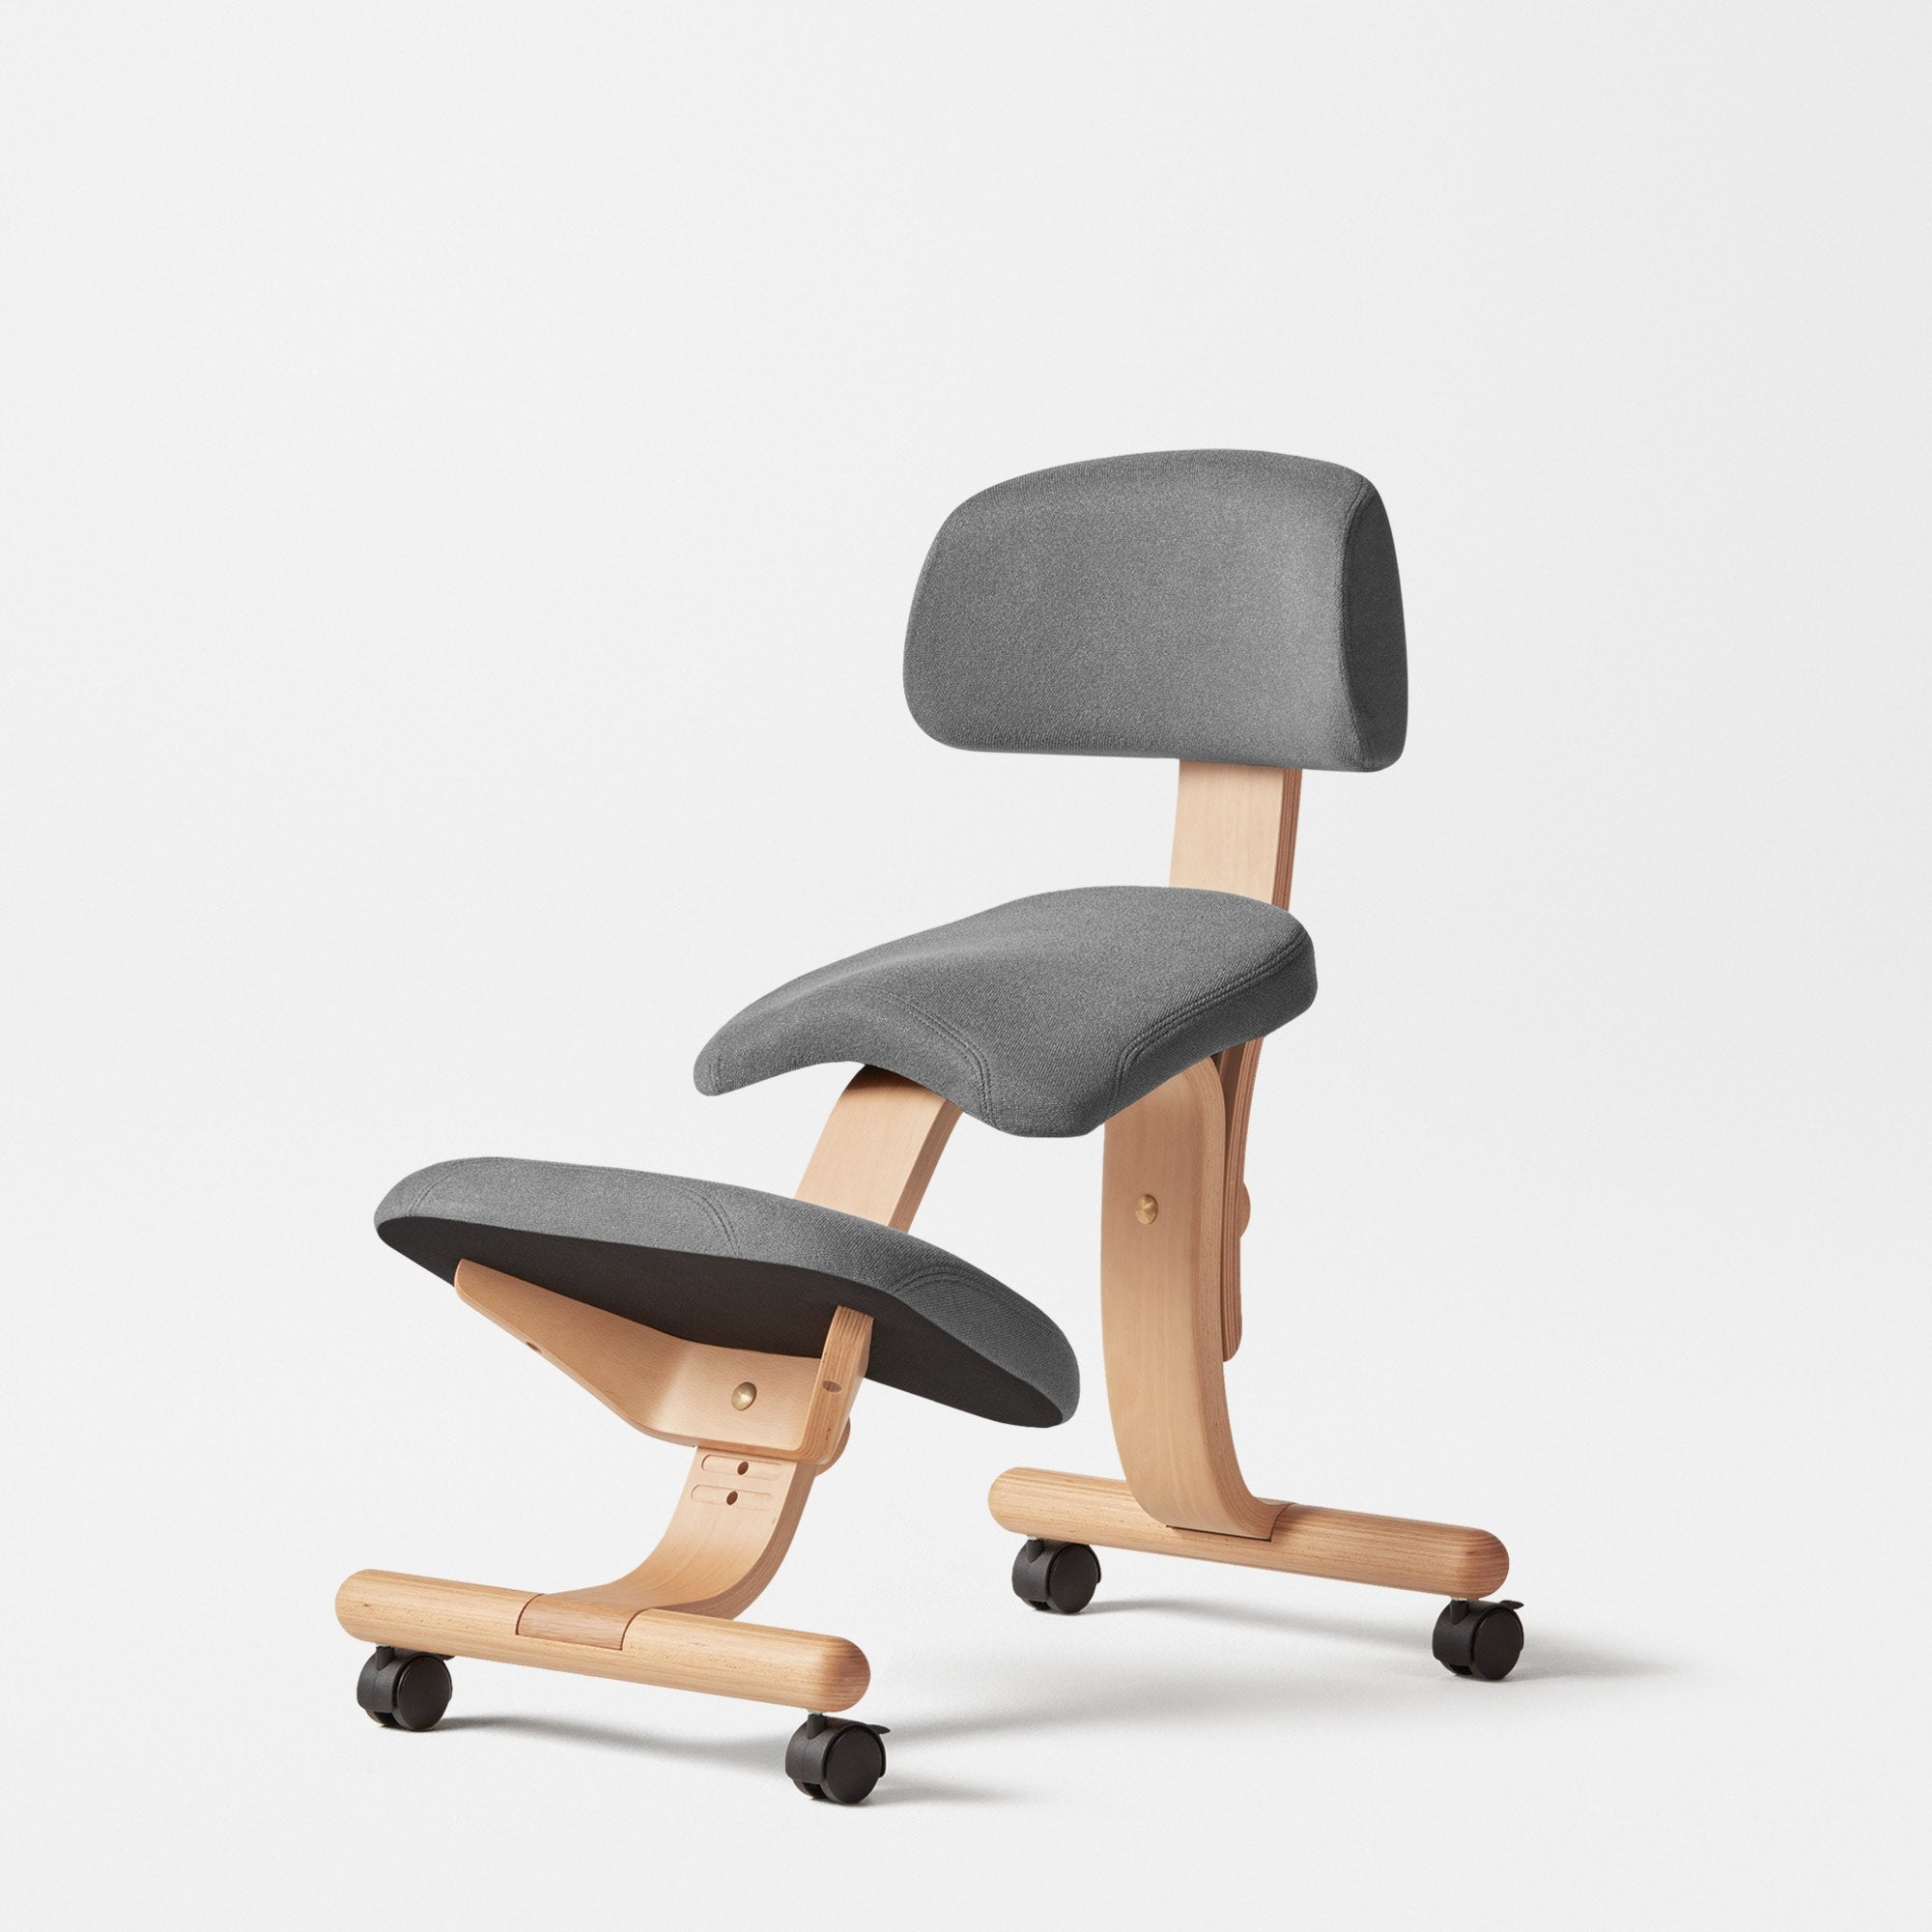 Balans Kneeling Chair Adjule